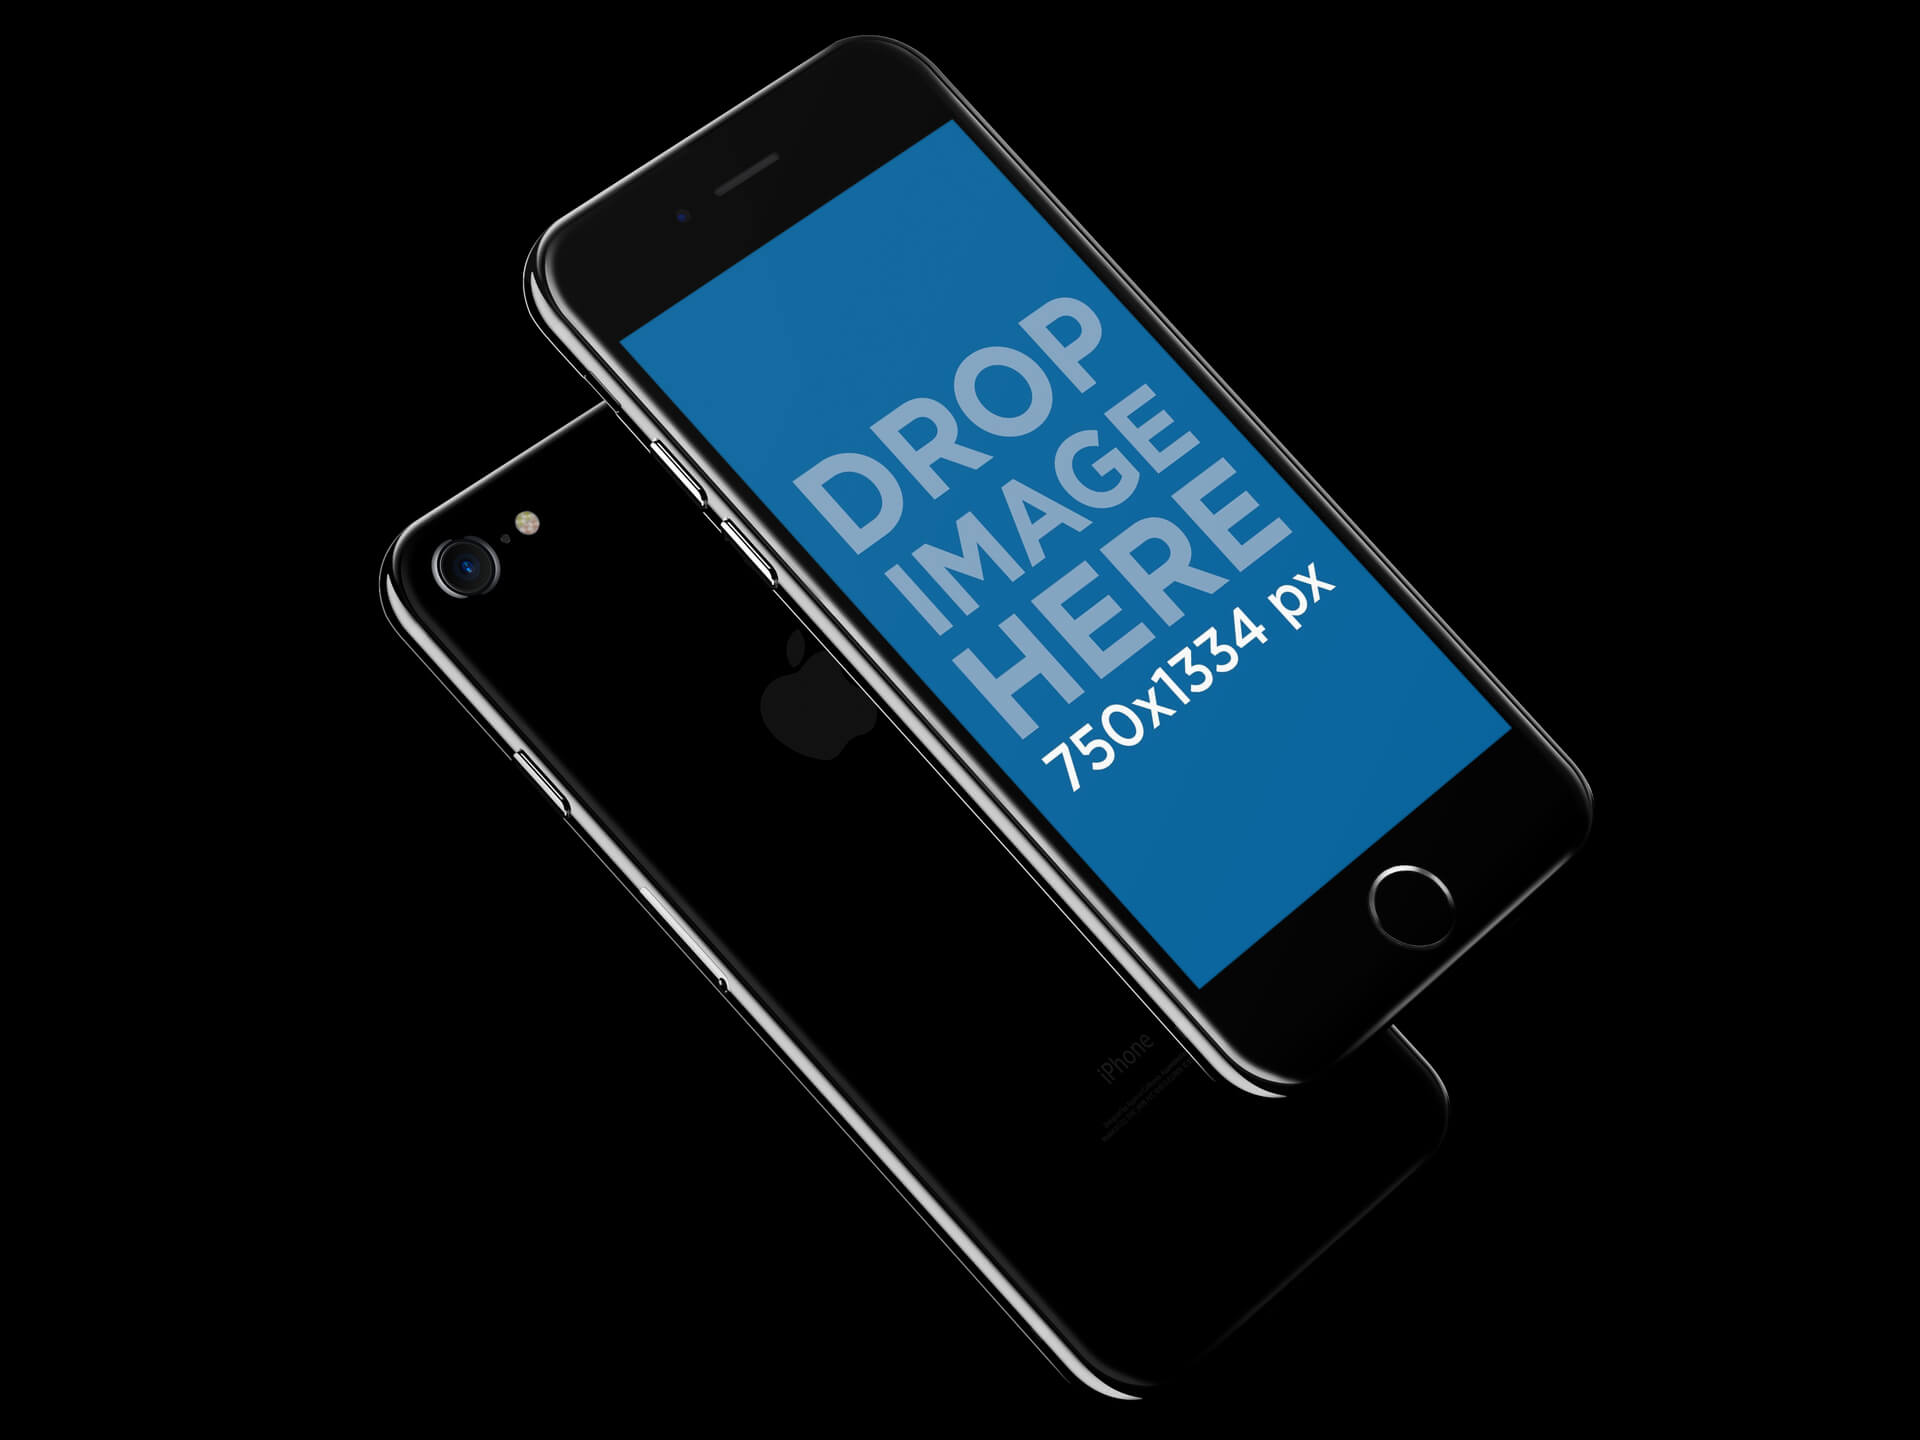 iPhone 7 Mockups Are Here and Ready to Showcase Your App!